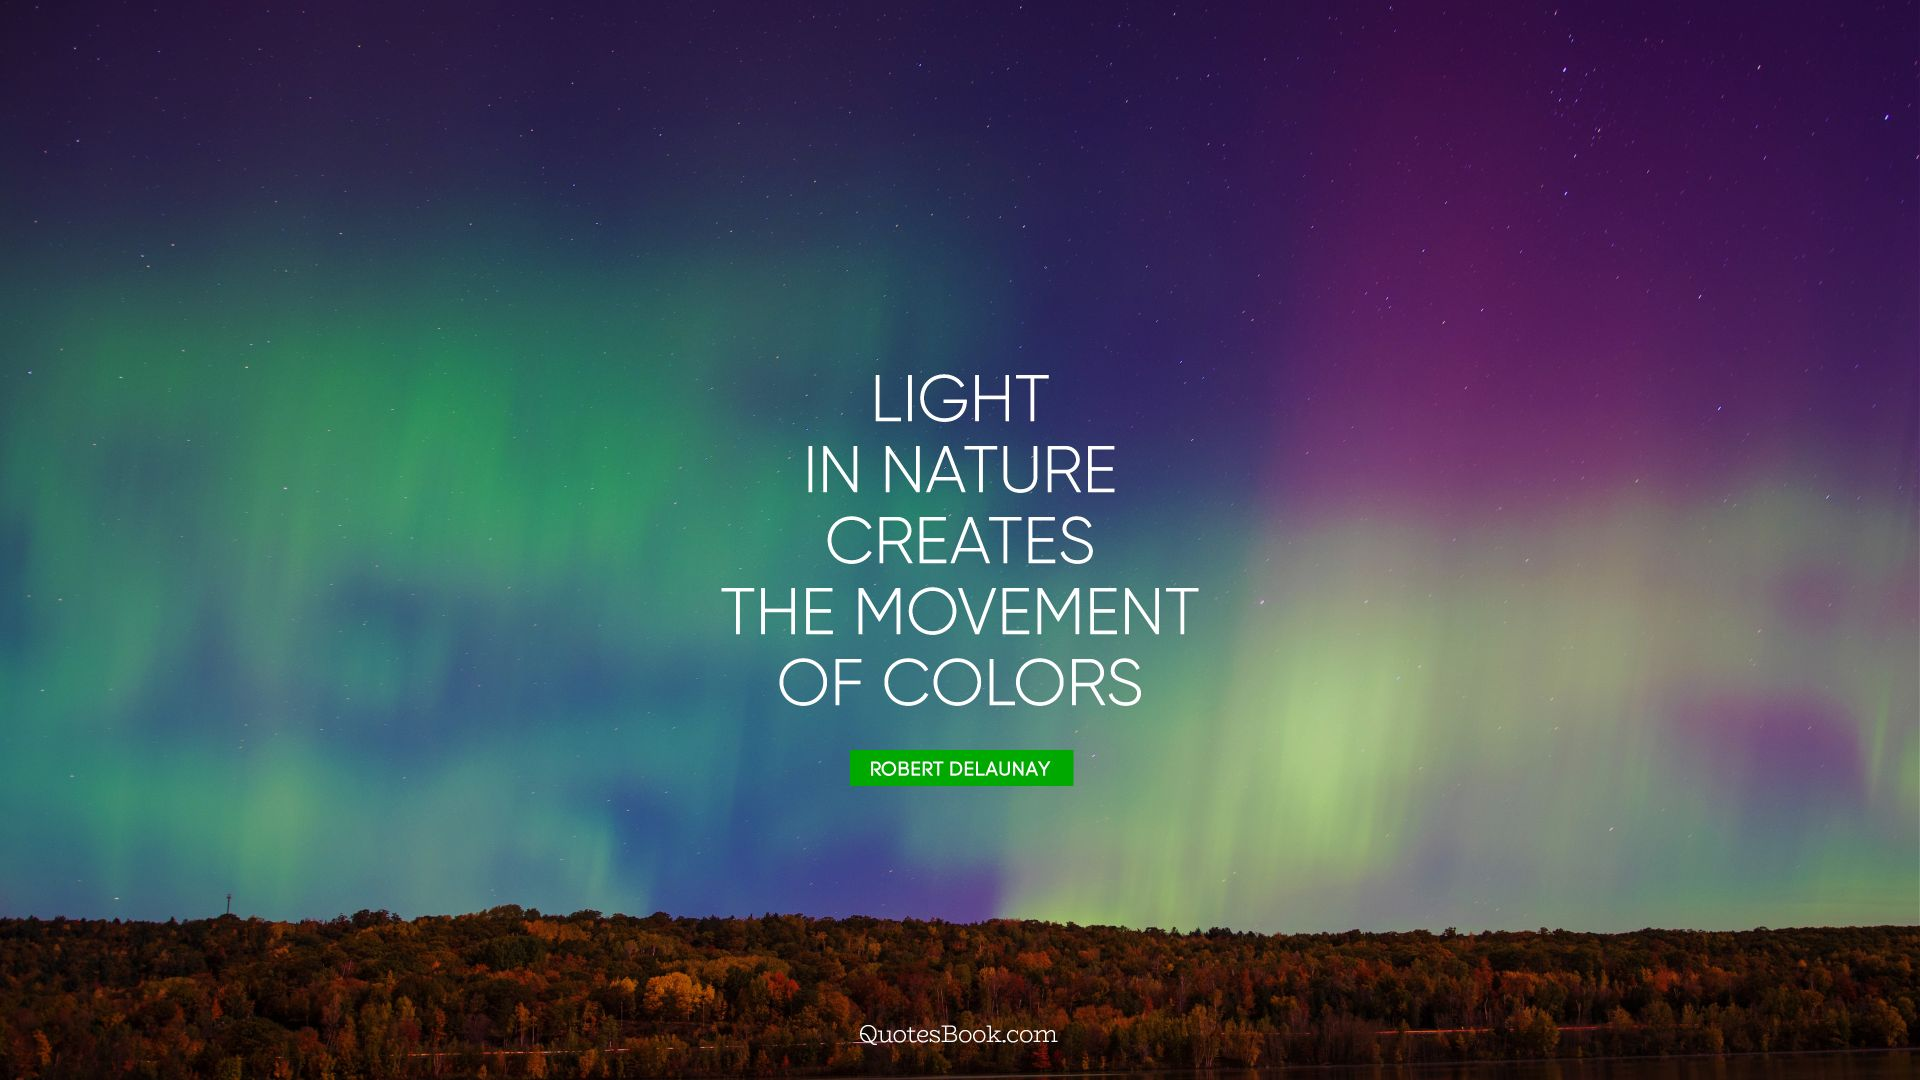 Light in Nature creates the movement of colors. - Quote by Robert Delaunay